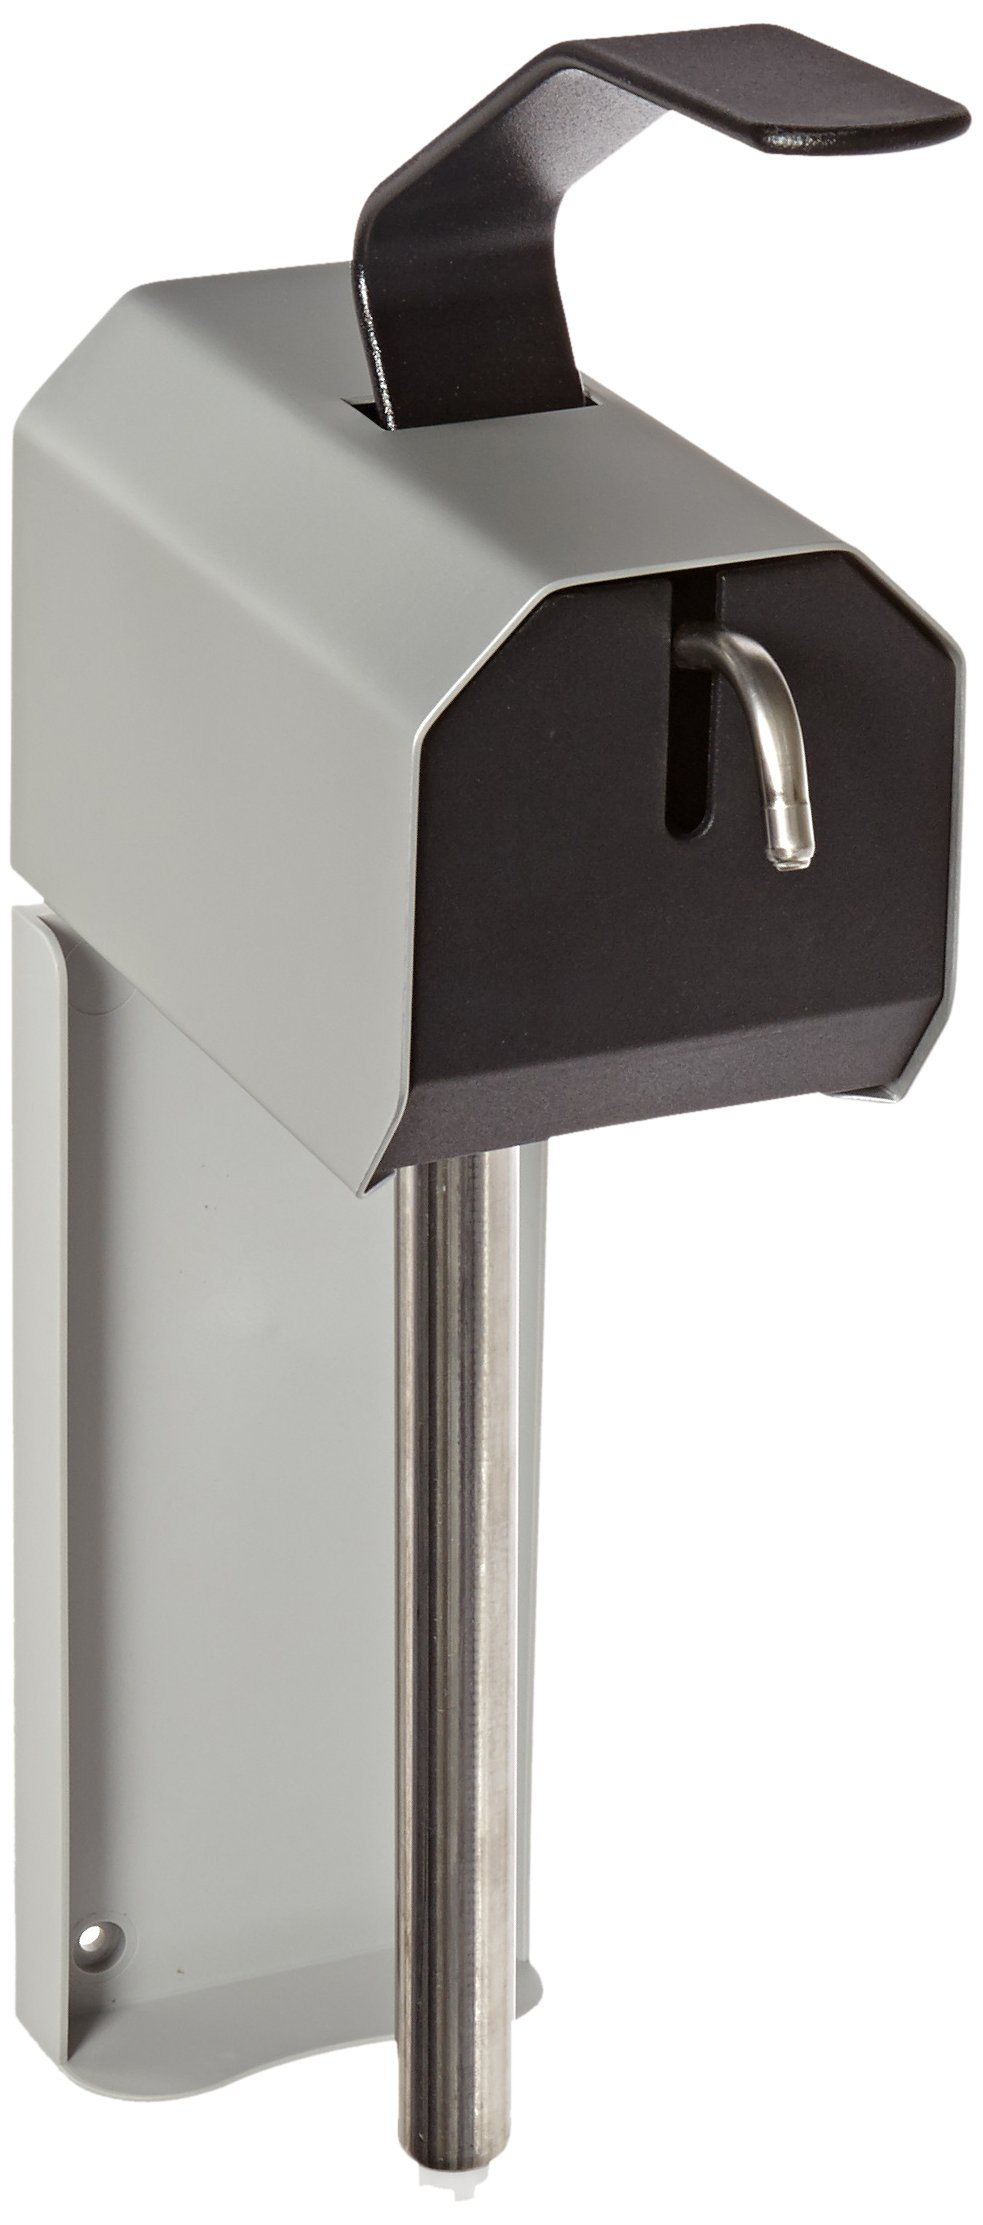 Impact 1310 Lotion and Grit Lotion Soap Dispenser, 9-1/2'' Length x 4'' Width x 17-1/4'' Height, Gray/Black (Case of 10)